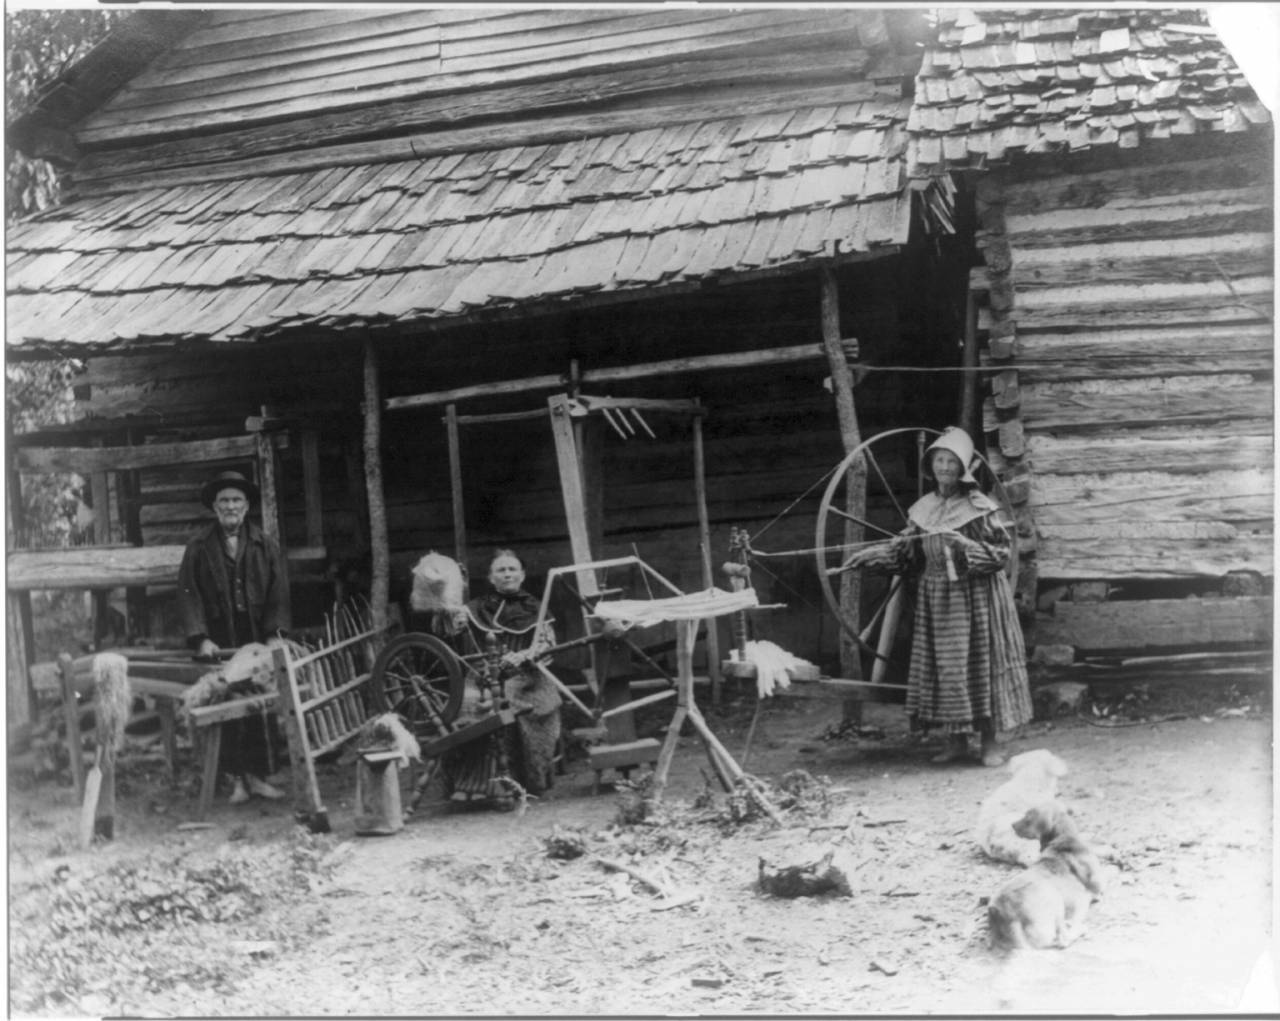 Title: The Faust family, Anderson County, Tenn. at spinning wheel in front of cabin Date Created/Published: c1910. Medium: 1 photographic print. Summary: Photograph shows people in front of a cabin processing and spinning flax. From right to left: Mary Faust standing next to large walking wheel, an umbrella swift, another woman seated at a spinning wheel with a distaff and a skein winder in front of her, and a man processing flax on a flax break with a counterbalance loom behind him.